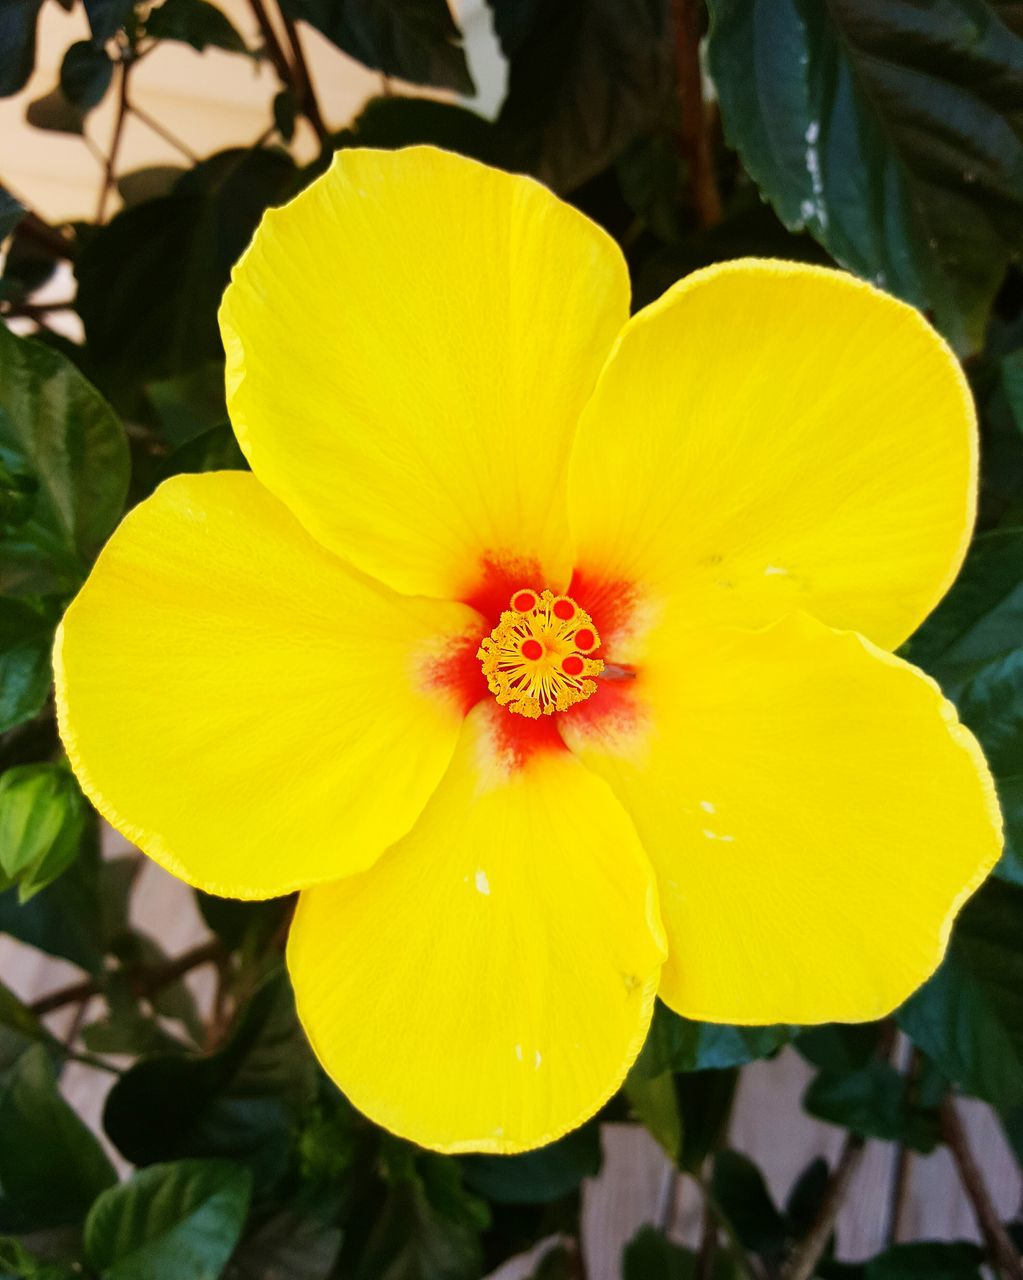 flower, yellow, petal, beauty in nature, fragility, flower head, nature, freshness, growth, blooming, plant, outdoors, vibrant color, day, close-up, no people, springtime, pansy, hibiscus